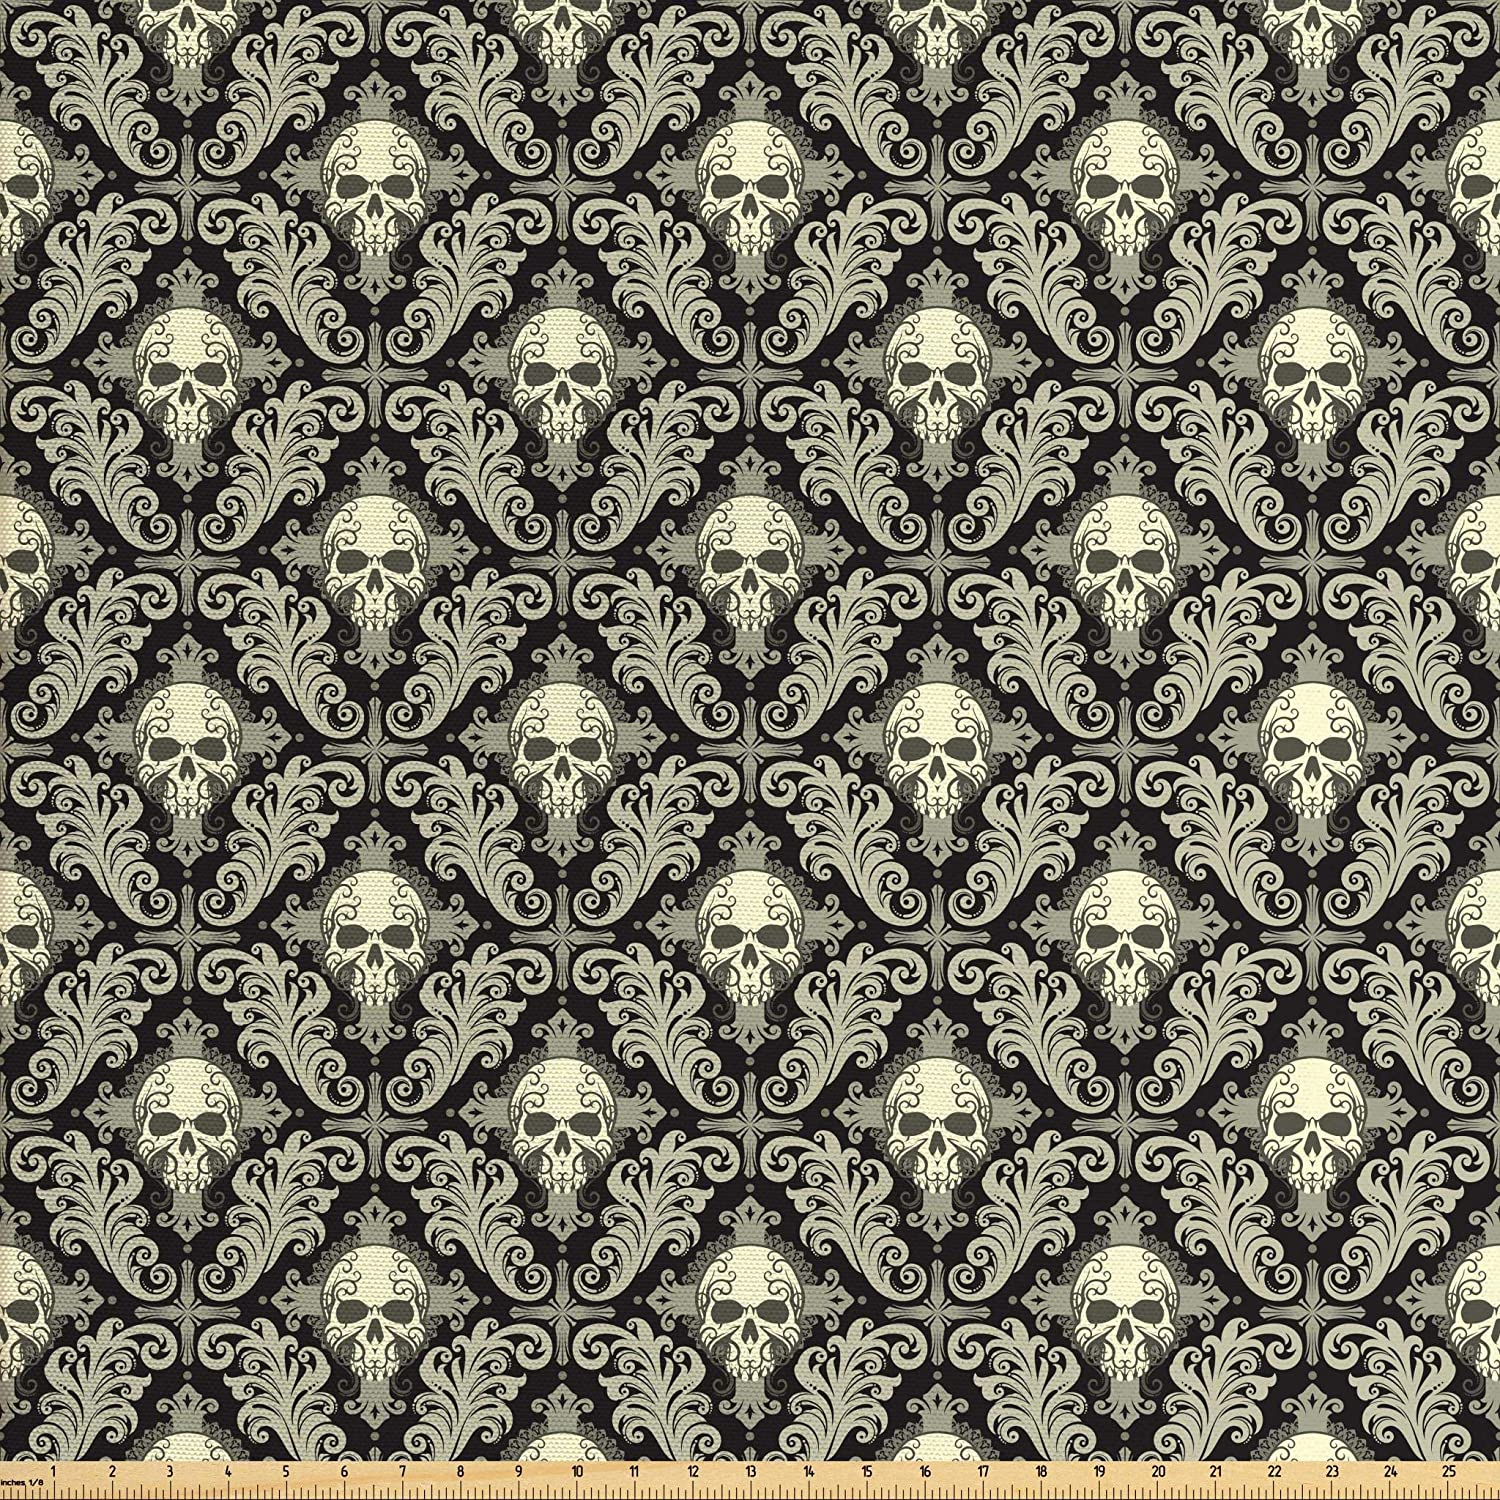 Lunarable Skull Fabric by The Yard, Skulls with Floral Curly Details Antique Victorian Design Gothic Elements, Decorative Fabric for Upholstery and Home Accents, 2 Yards, Black Taupe